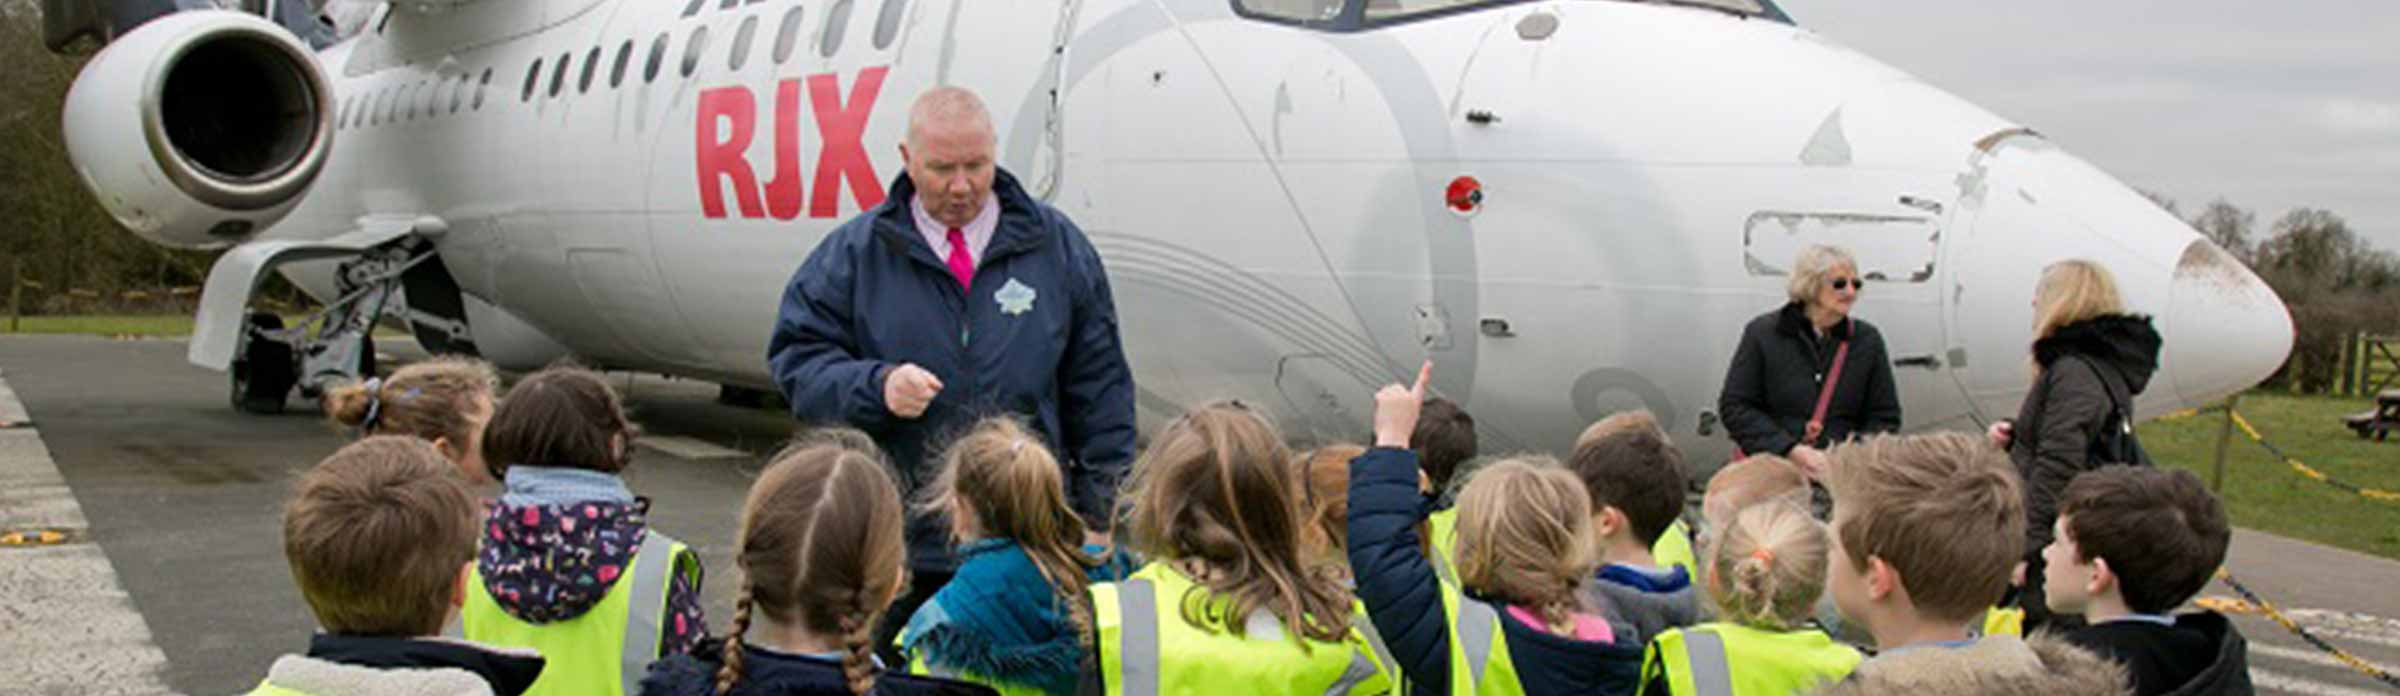 Man teaching children next to plane